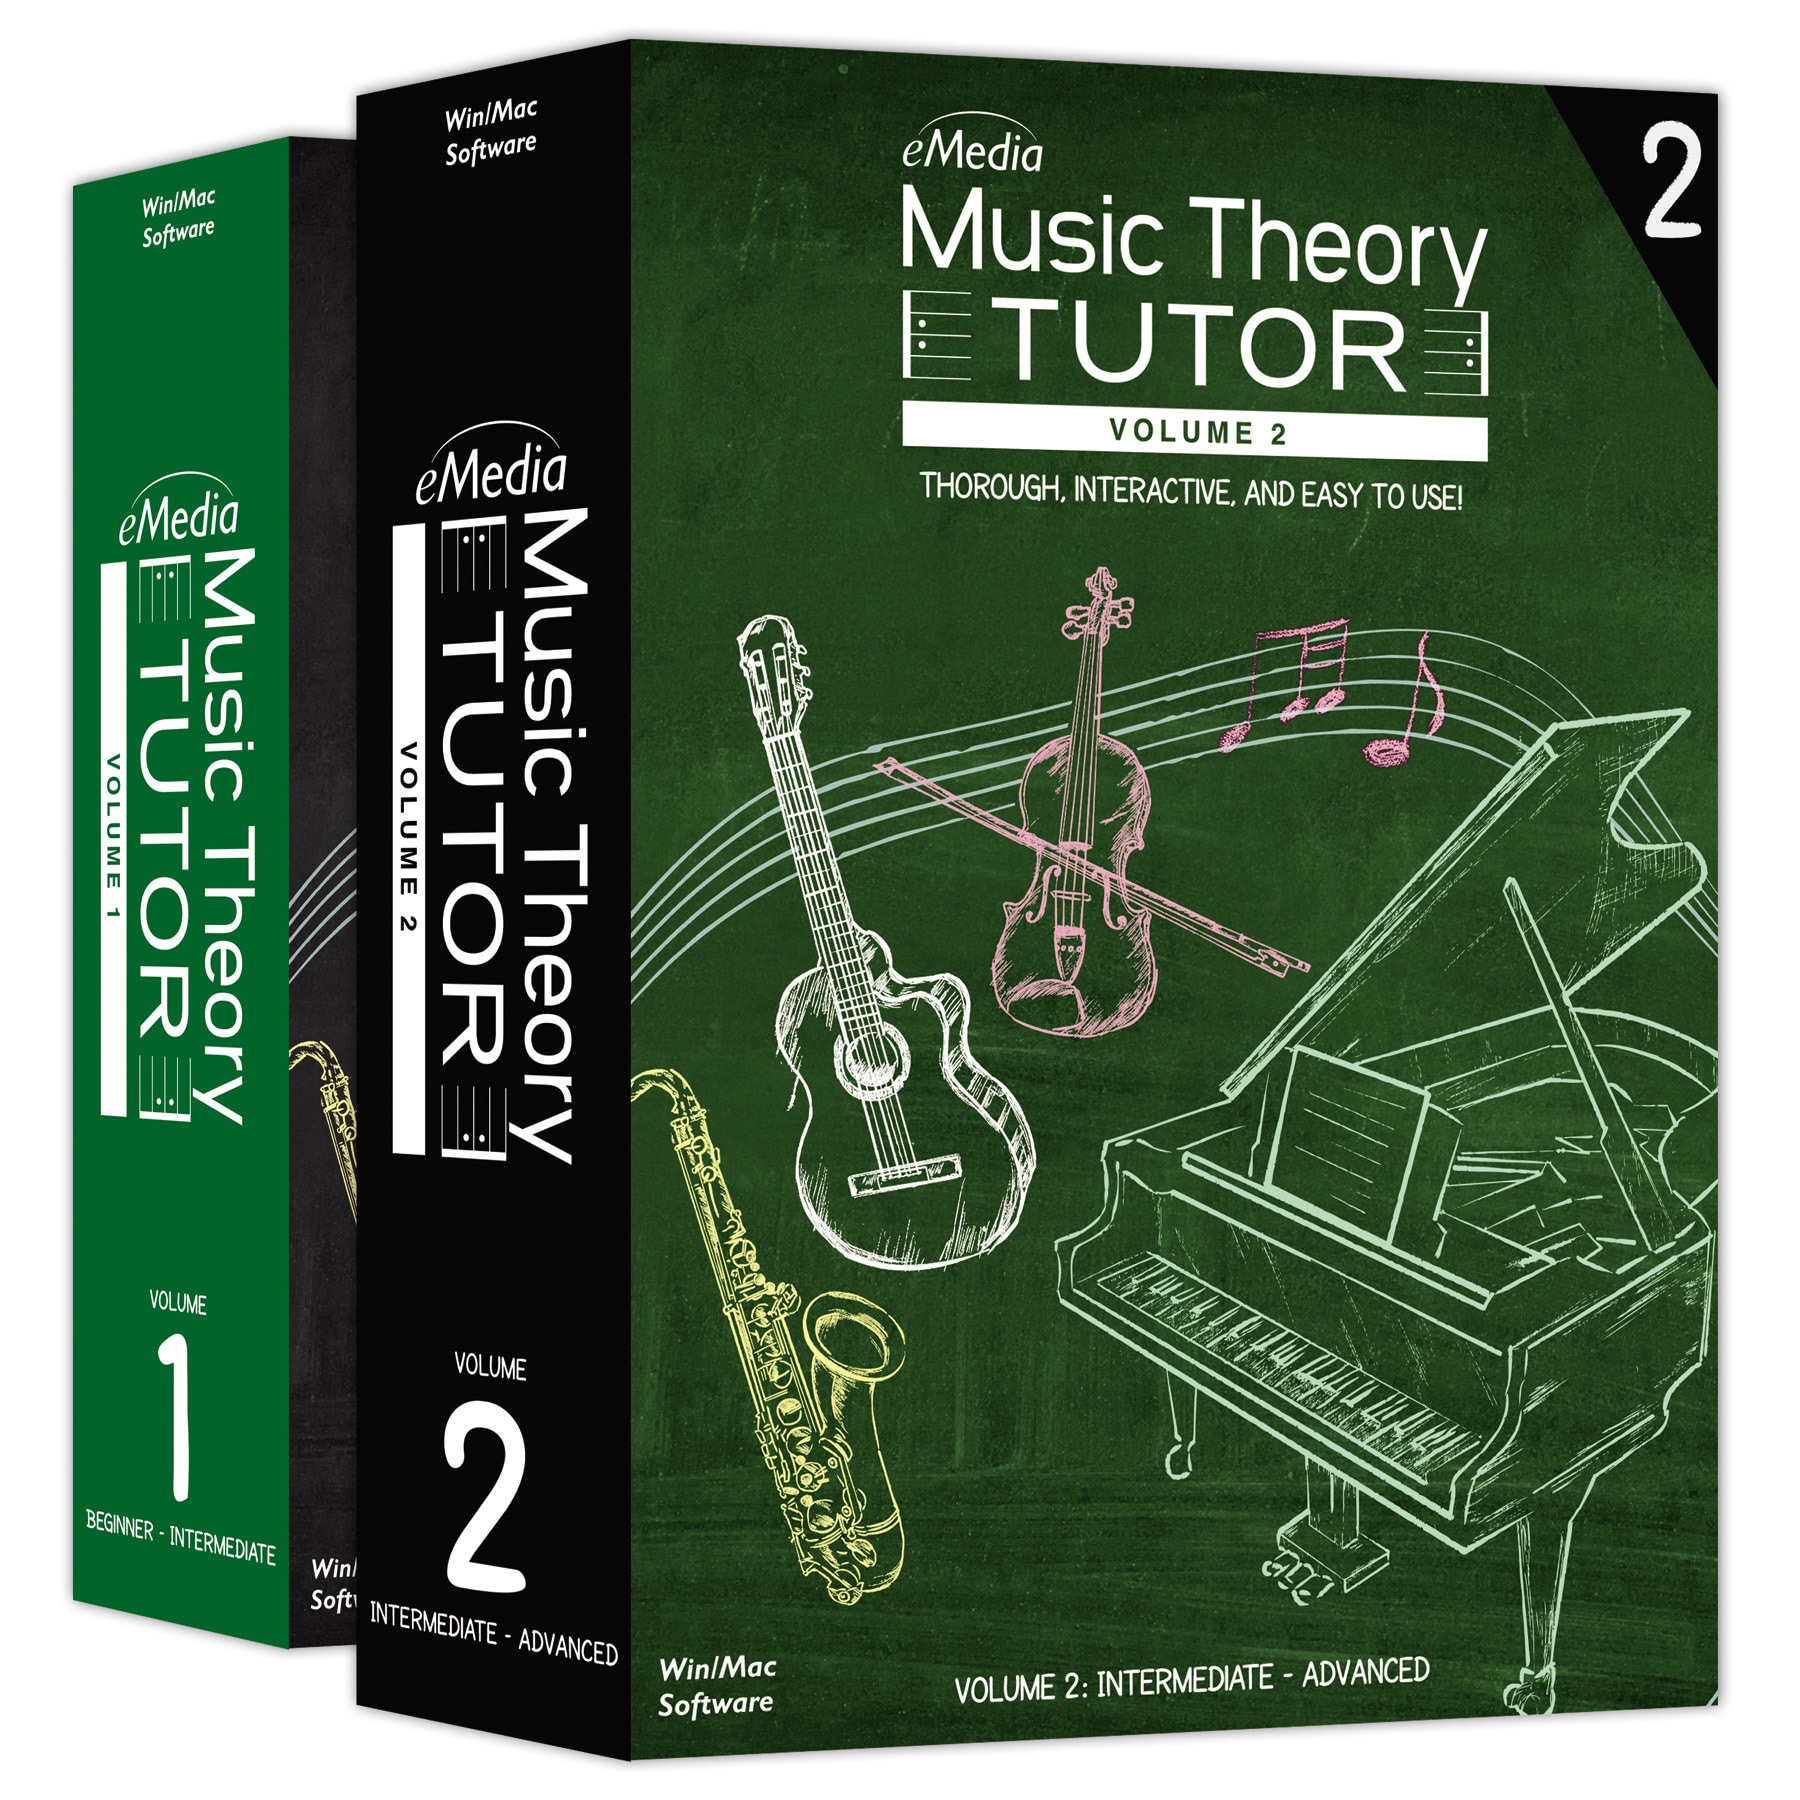 E Media Music Theory Tutor Complete (vol 1 and Volume 2) ...